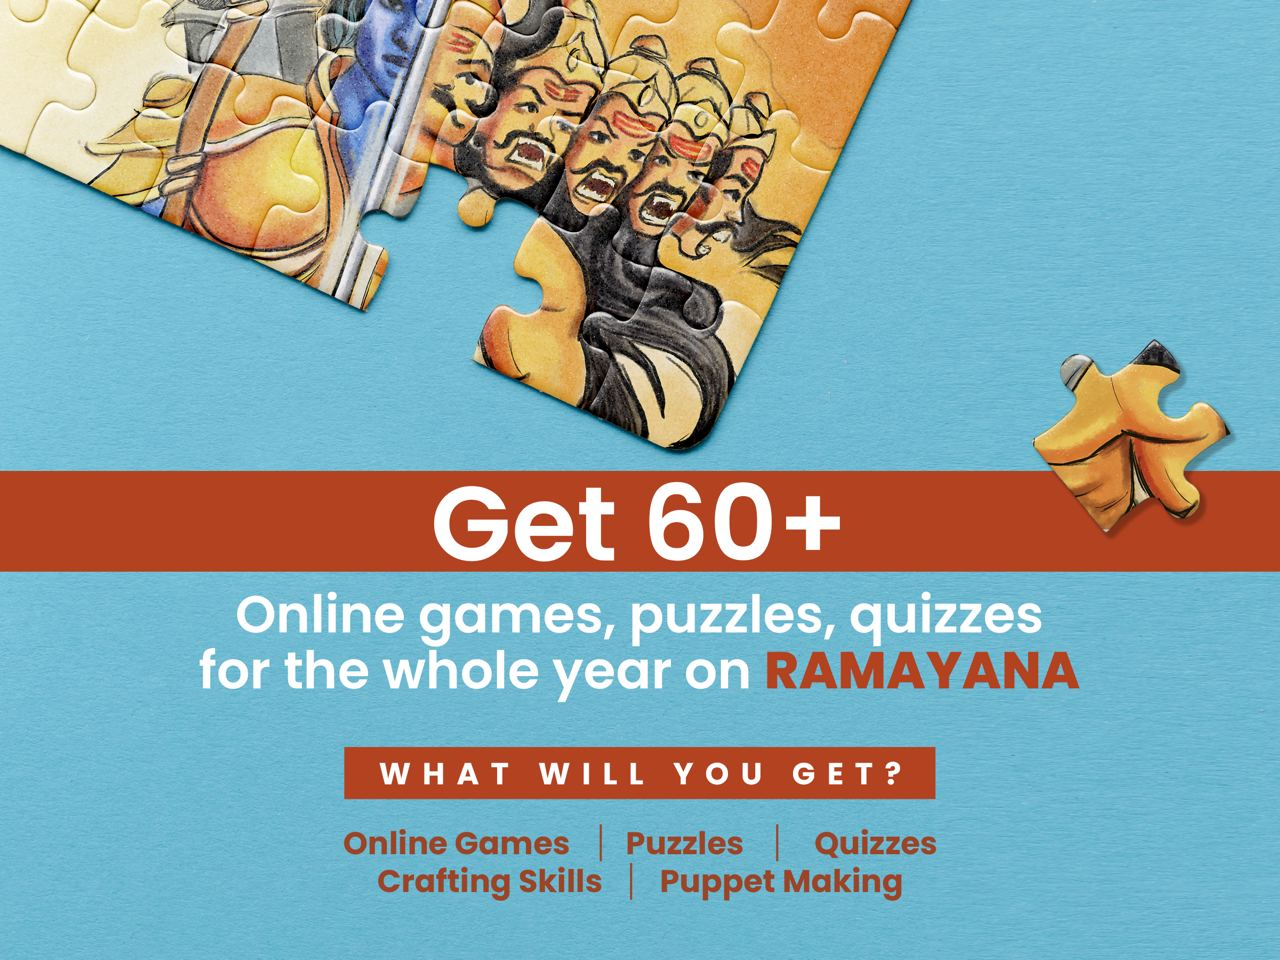 60+ Online Games, Puzzles, Quizzes for the whole year on Ramayana